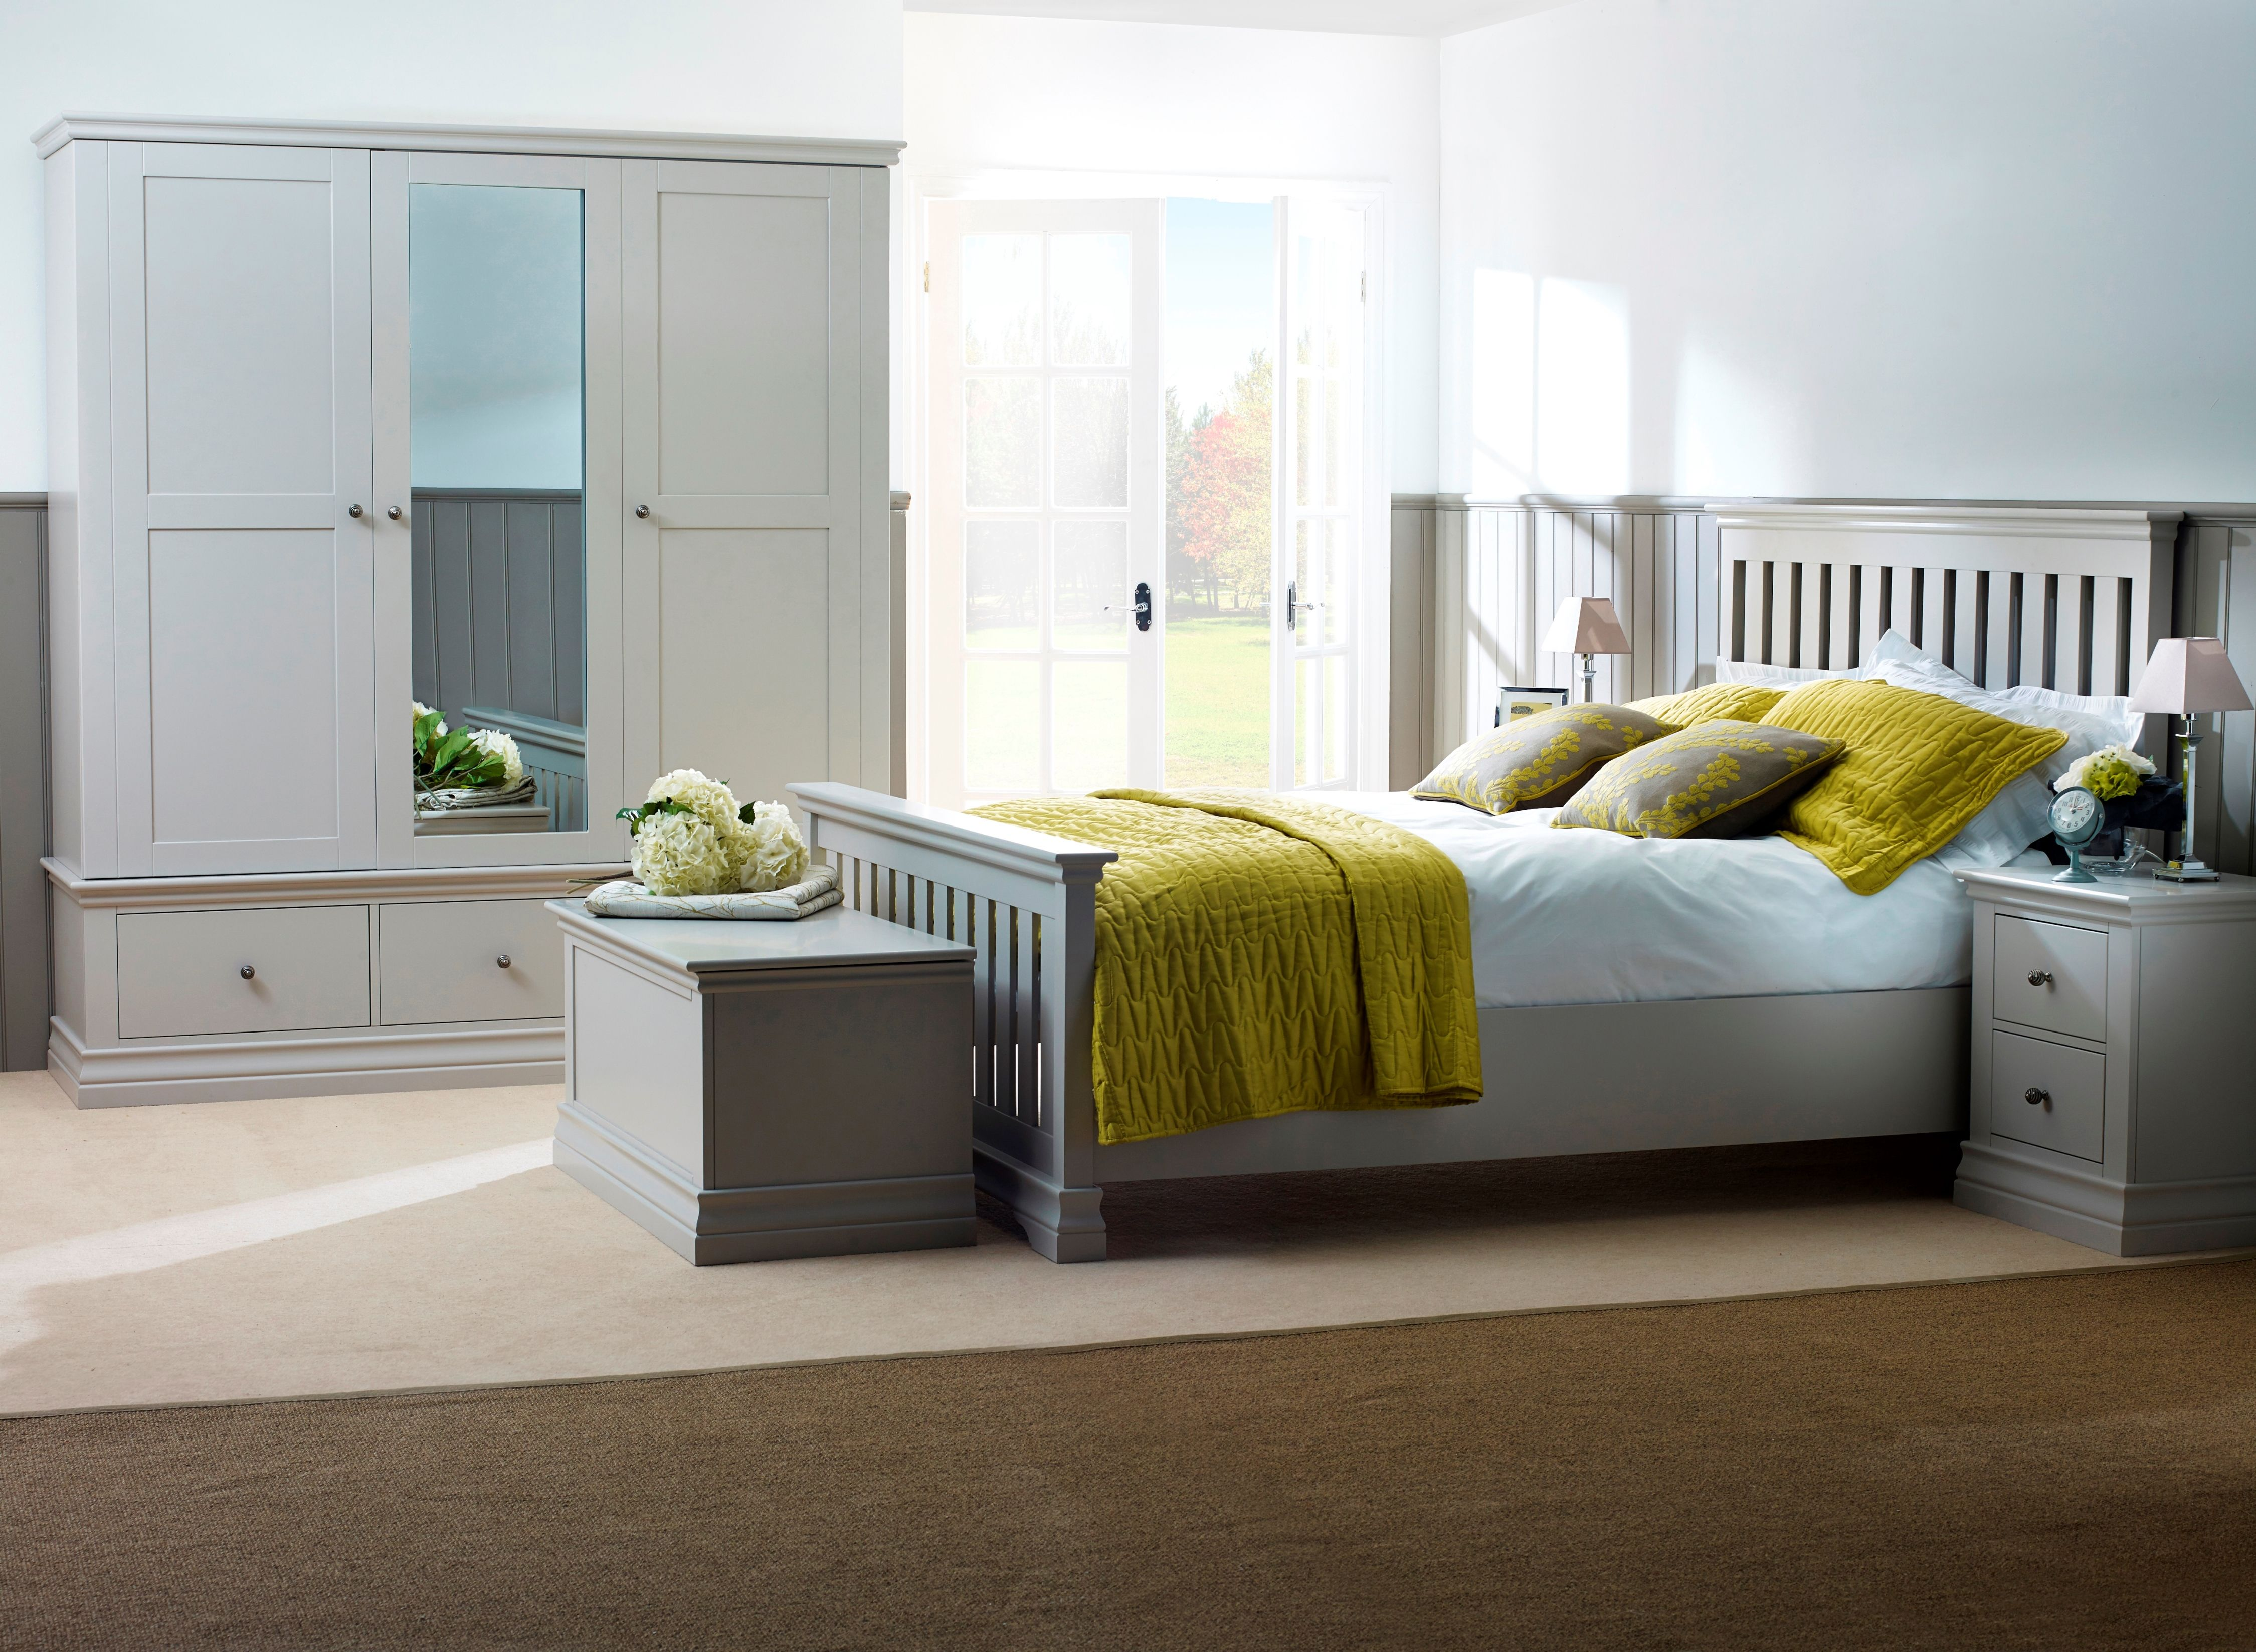 Stunning handpainted Annecy bedroom furniture Painted